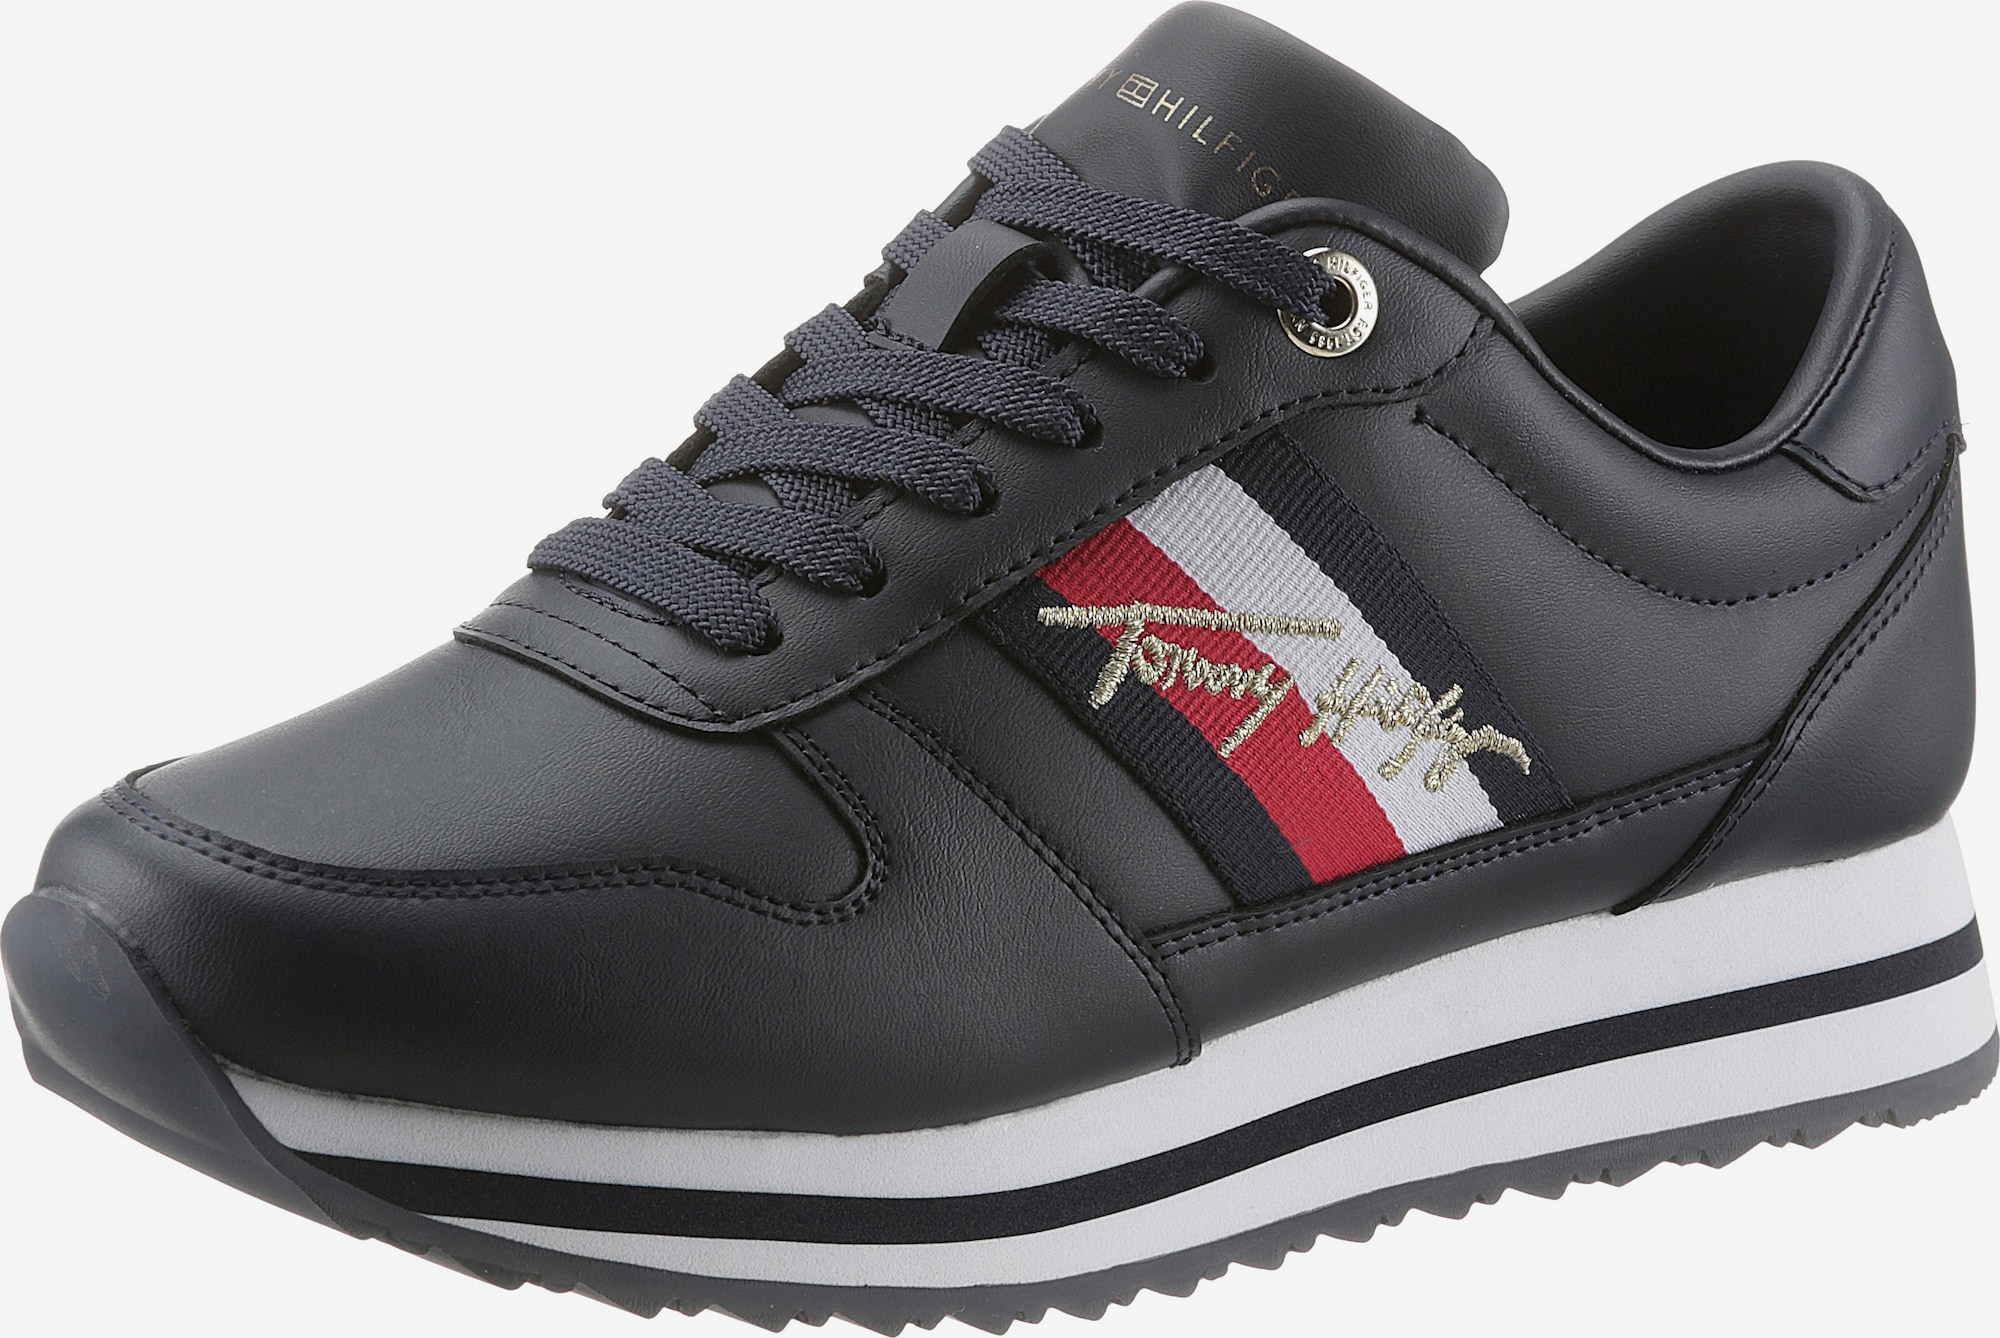 Tommy Hilfiger TH SIGNATURE RUNNER SNEAKER